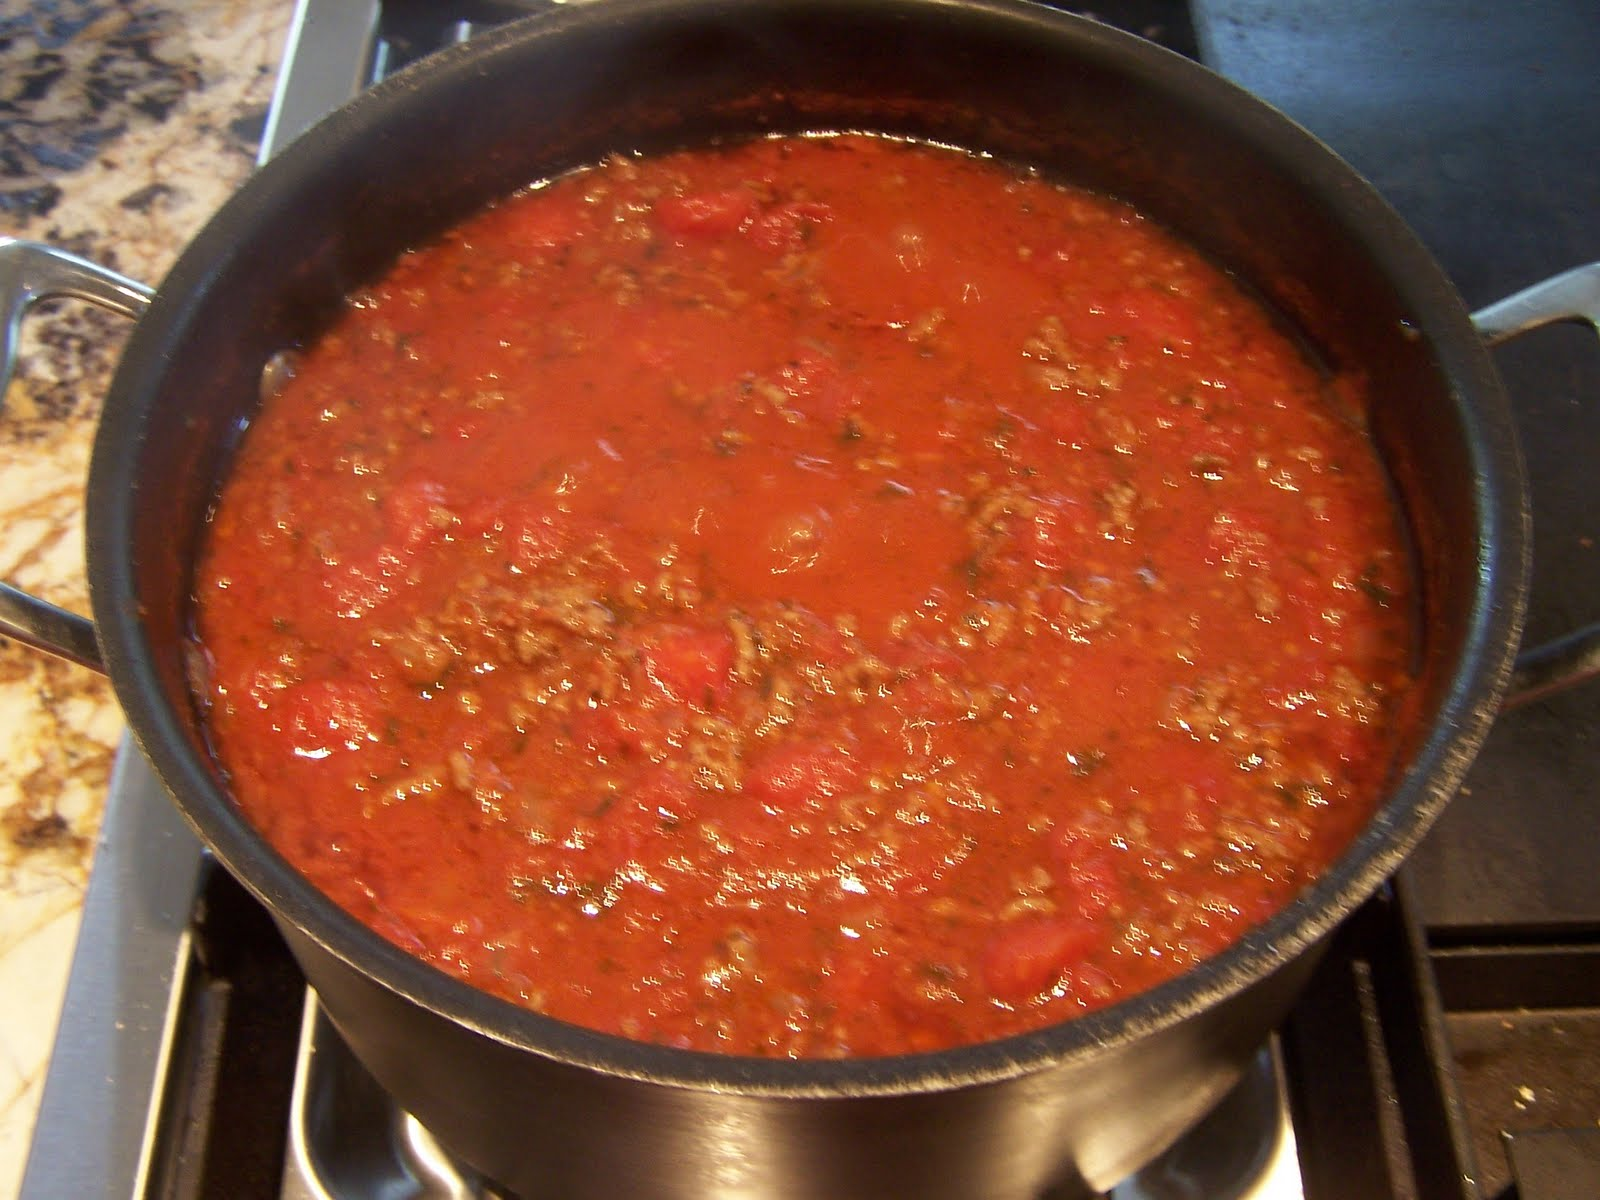 ... you sauce with ground beef spaghetti and meat sauce add ground beef or